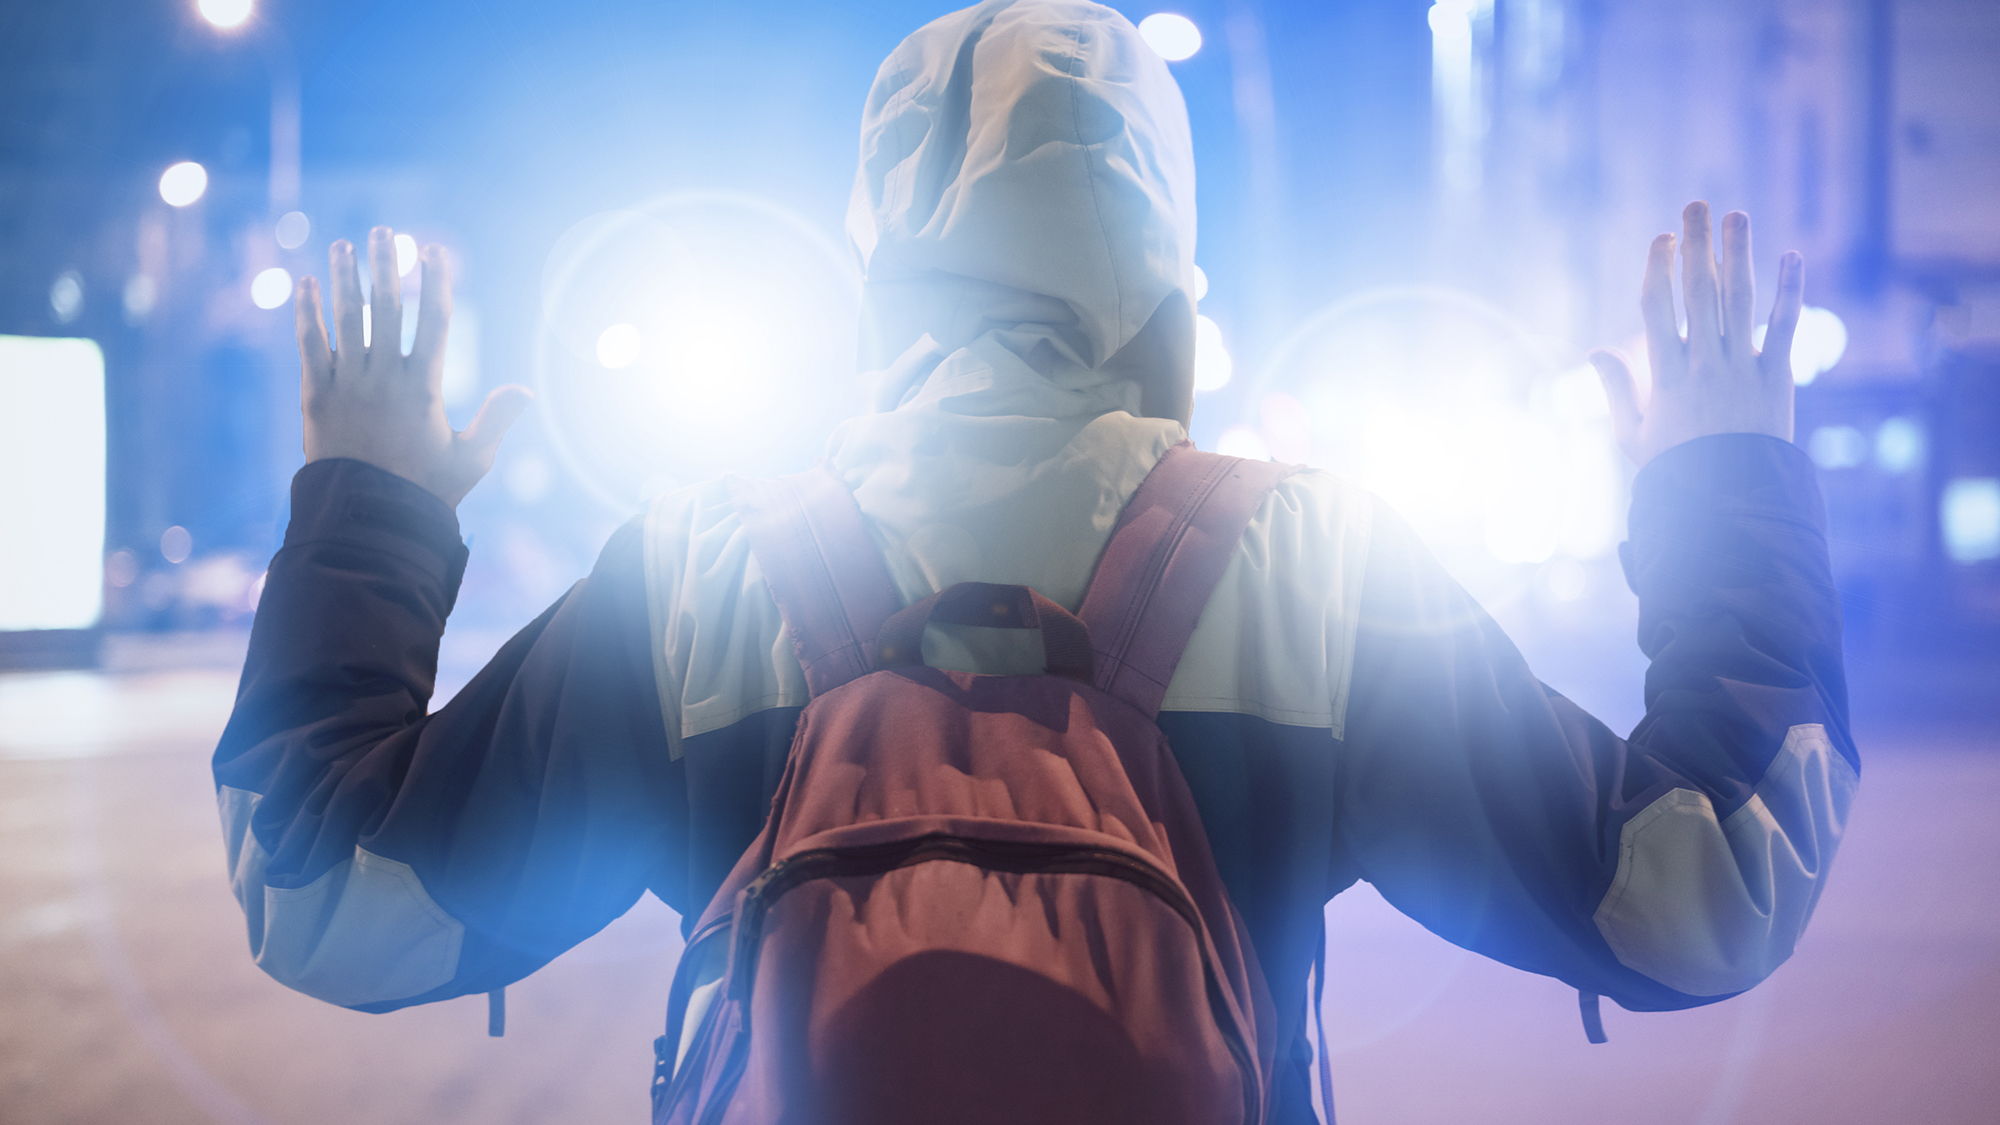 Stock photo of a person with a backpack, wearing a hoodie, with hands up.